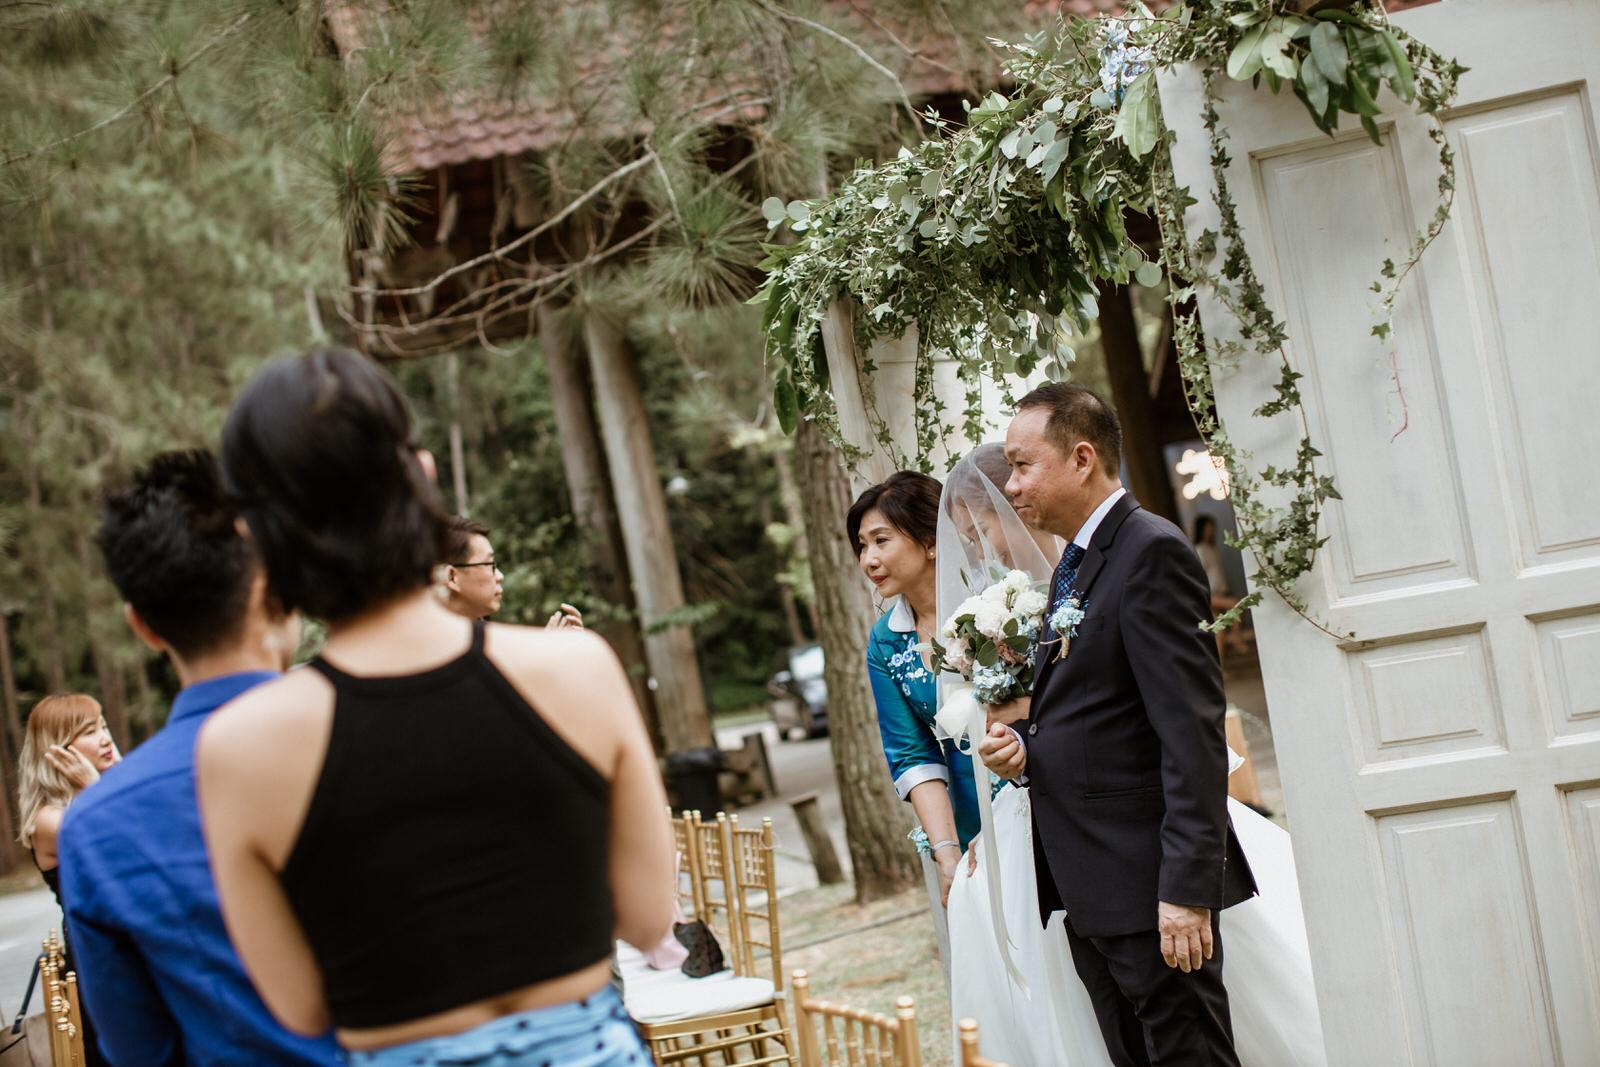 Bride and parents march in Tanarimba Rustic Garden Weding Janda baik Decoration Photobooth Cliff Choong Photography